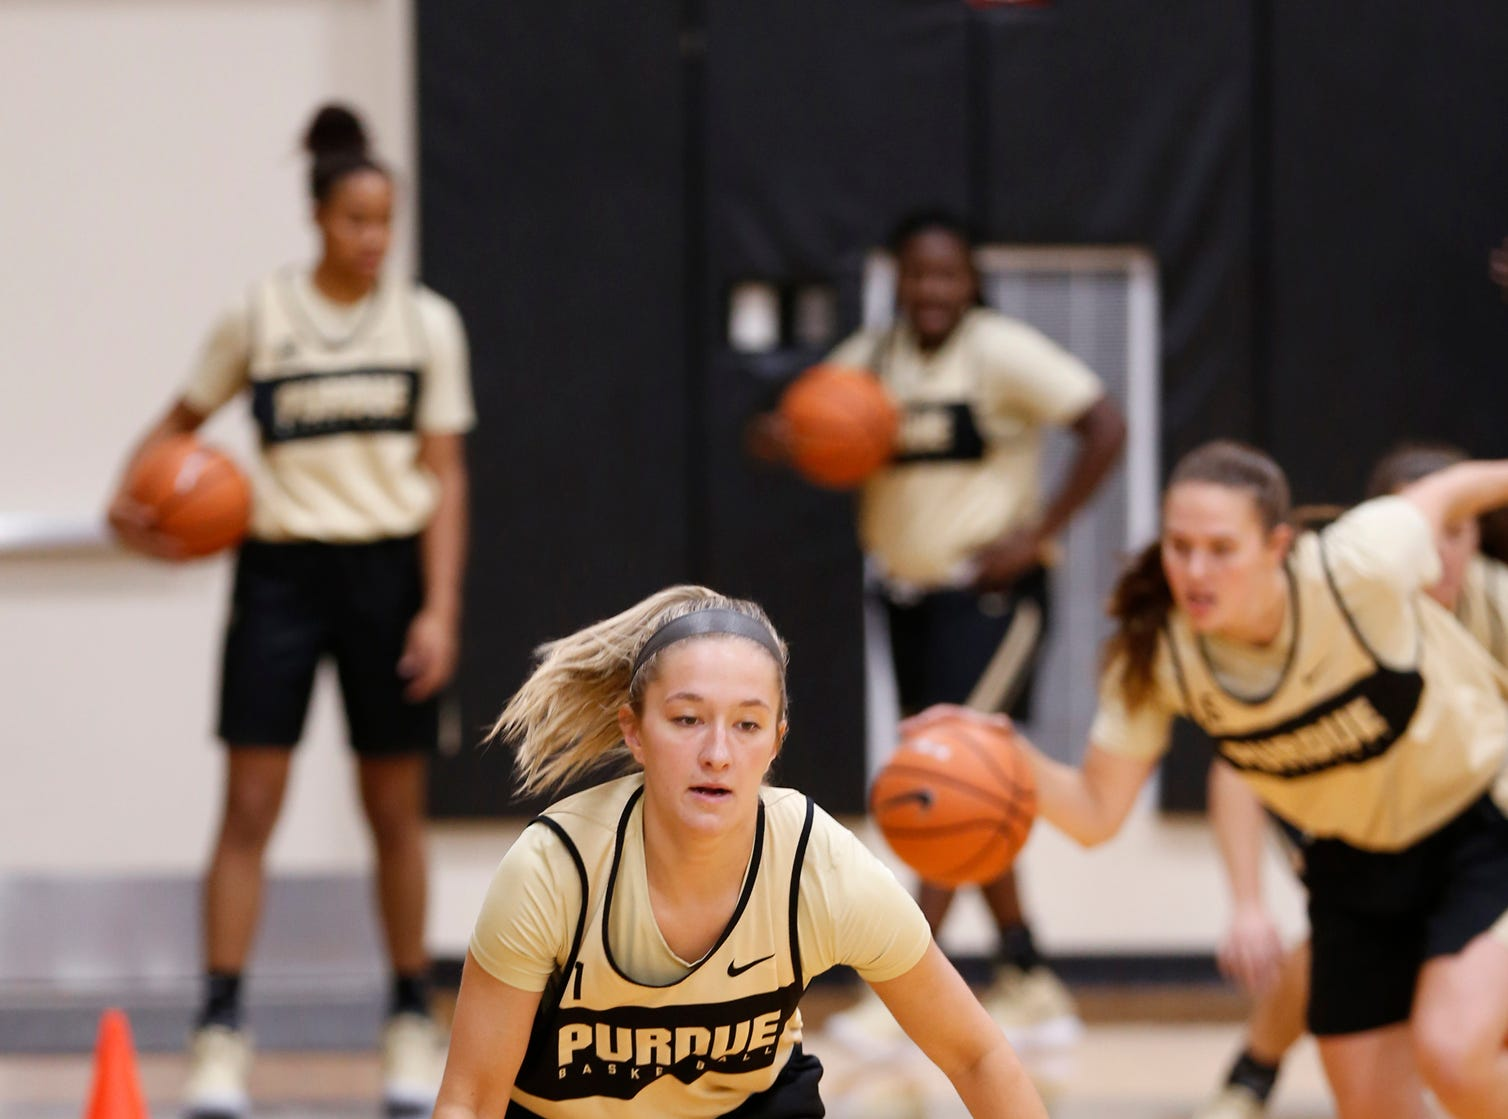 Karissa McLaughlin runs through a dribbling drill during practice for Purdue women's basketball Wednesday, September 26, 2018, at Cardinal Court in Mackey Arena.